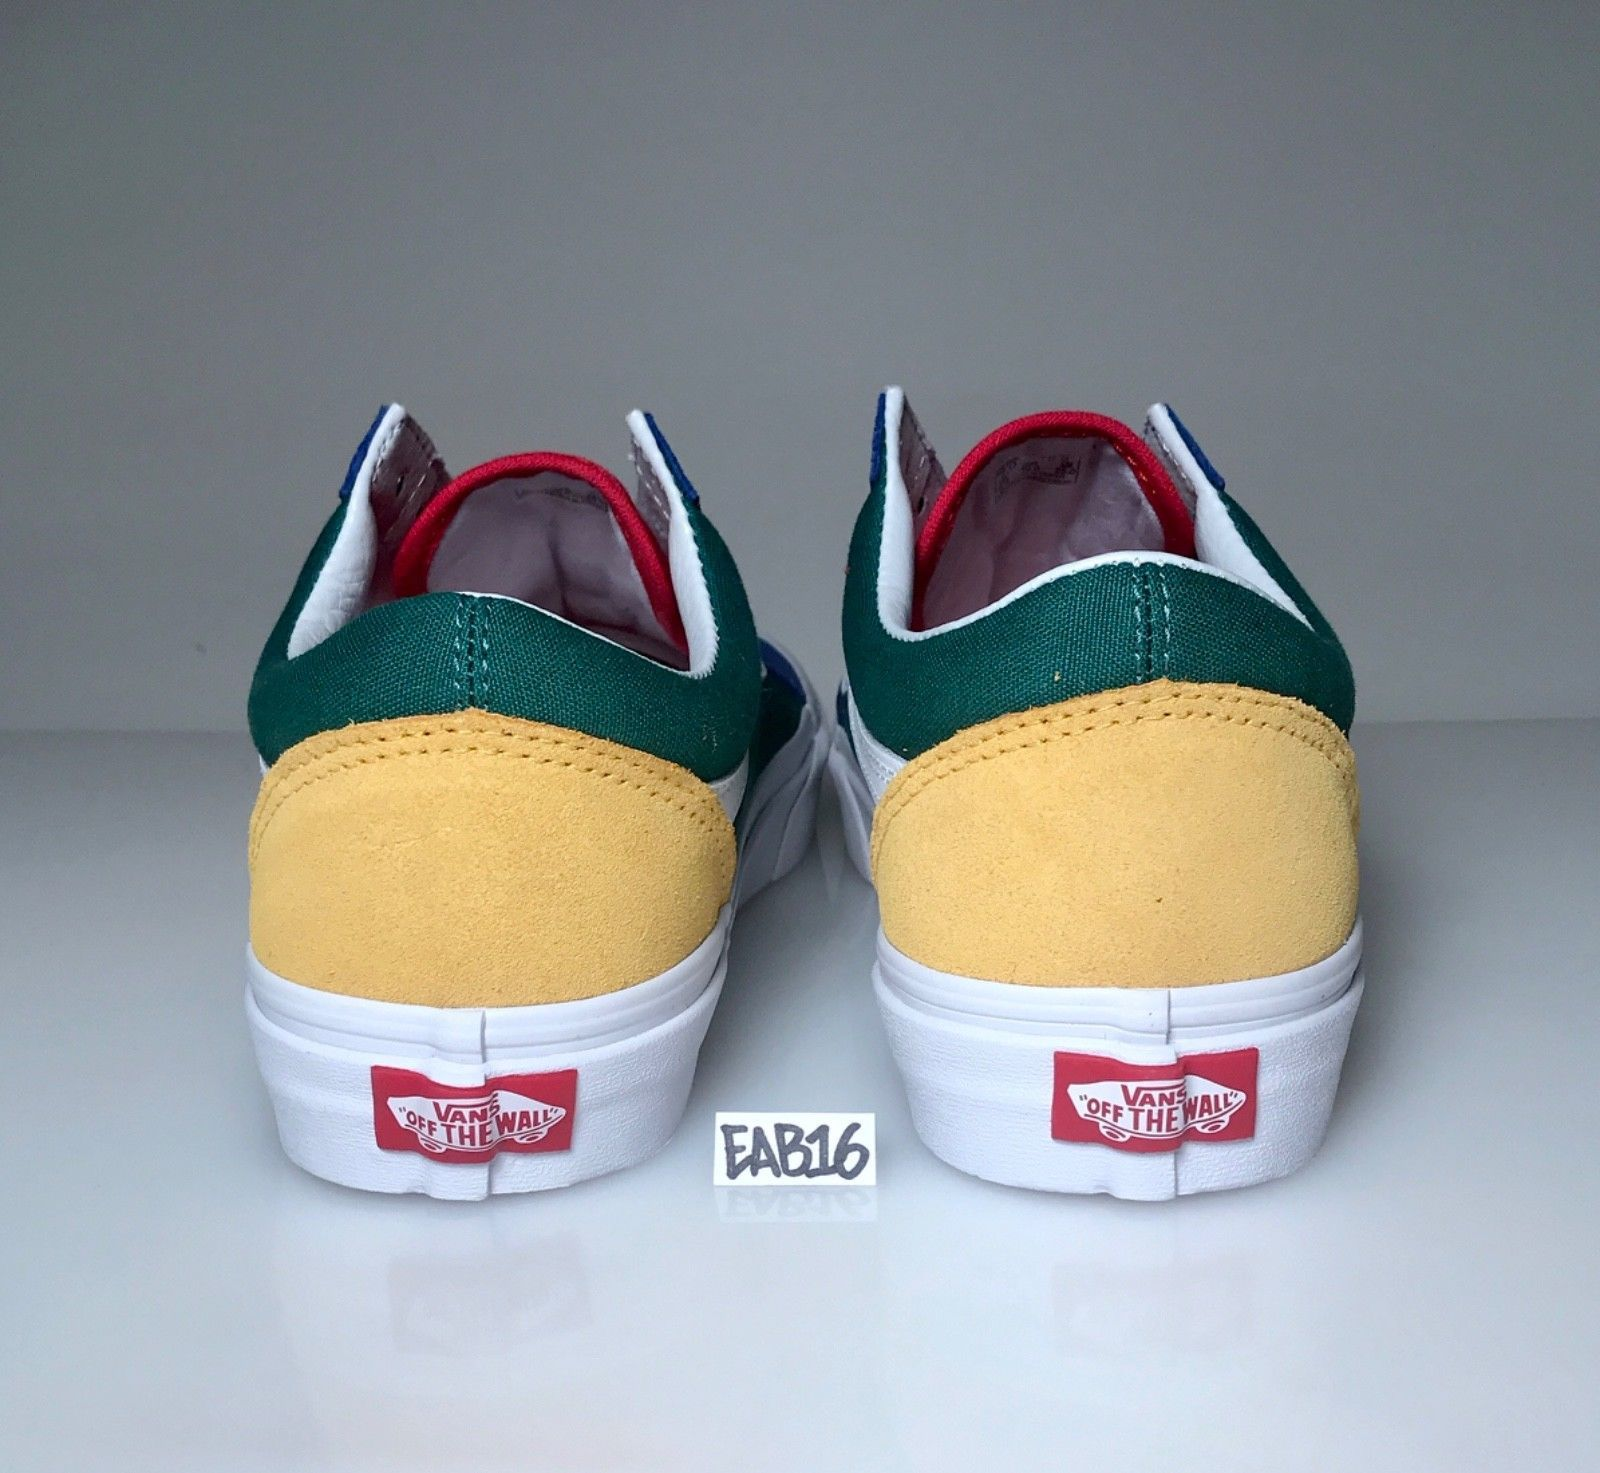 49a61fc6000e45 Vans Old Skool Yacht Club Yellow Blue Green and Red Colorblocked Color  Blocked